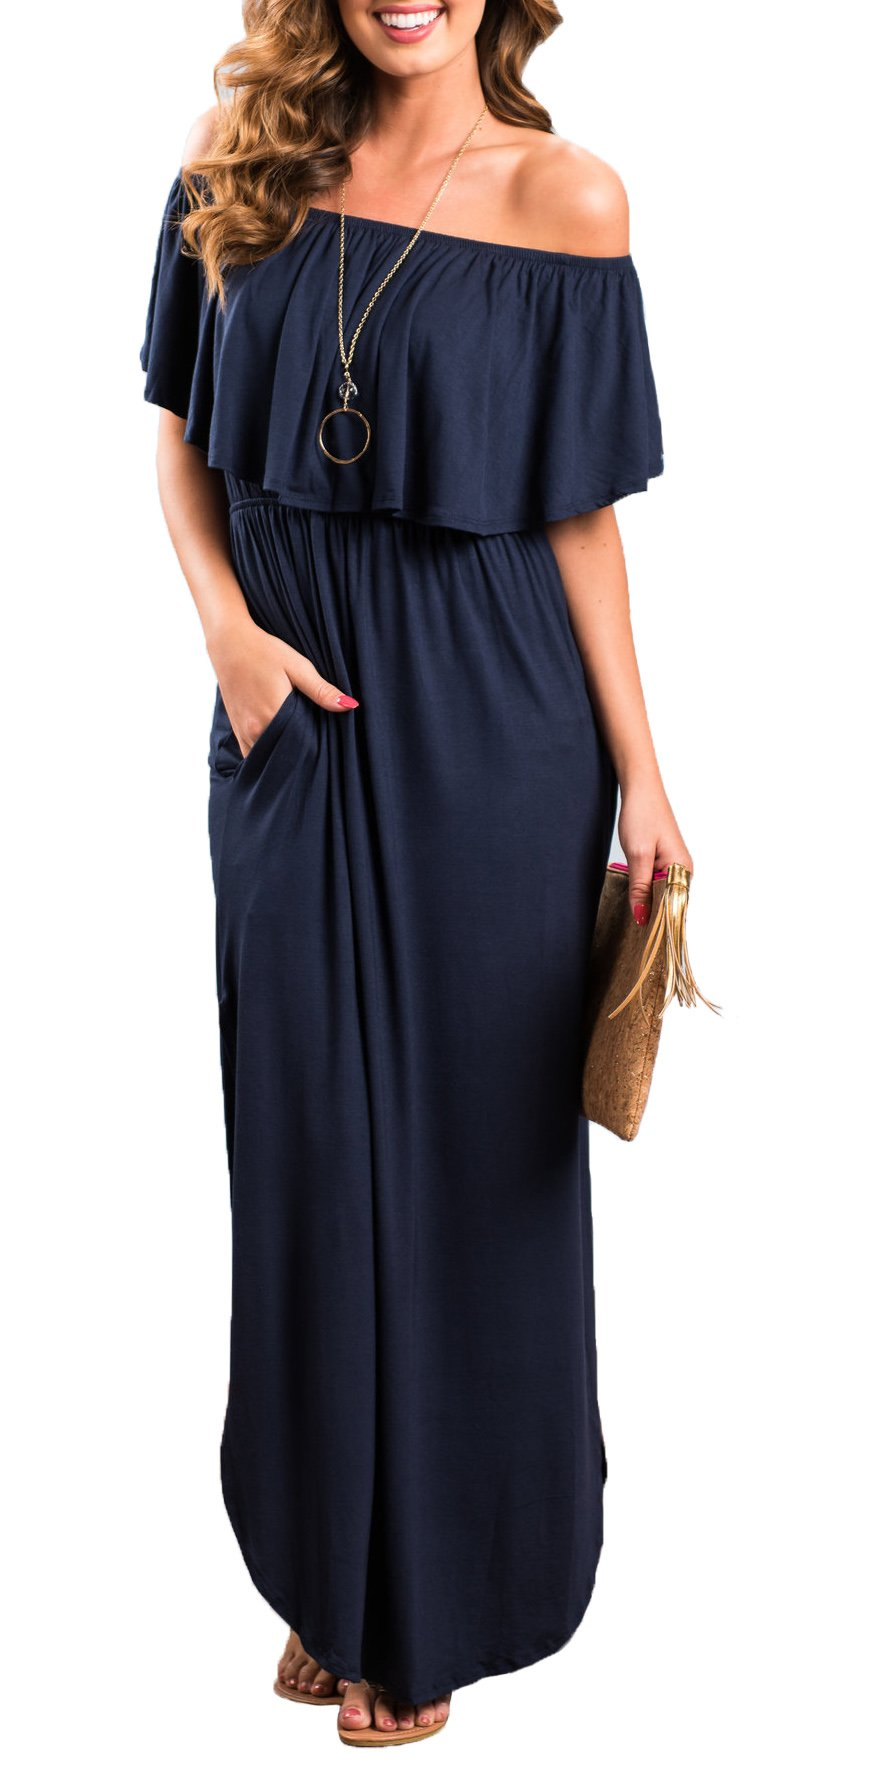 Womens Off The Shoulder Ruffle Party Dresses Side Split Beach Maxi Dress Navy L